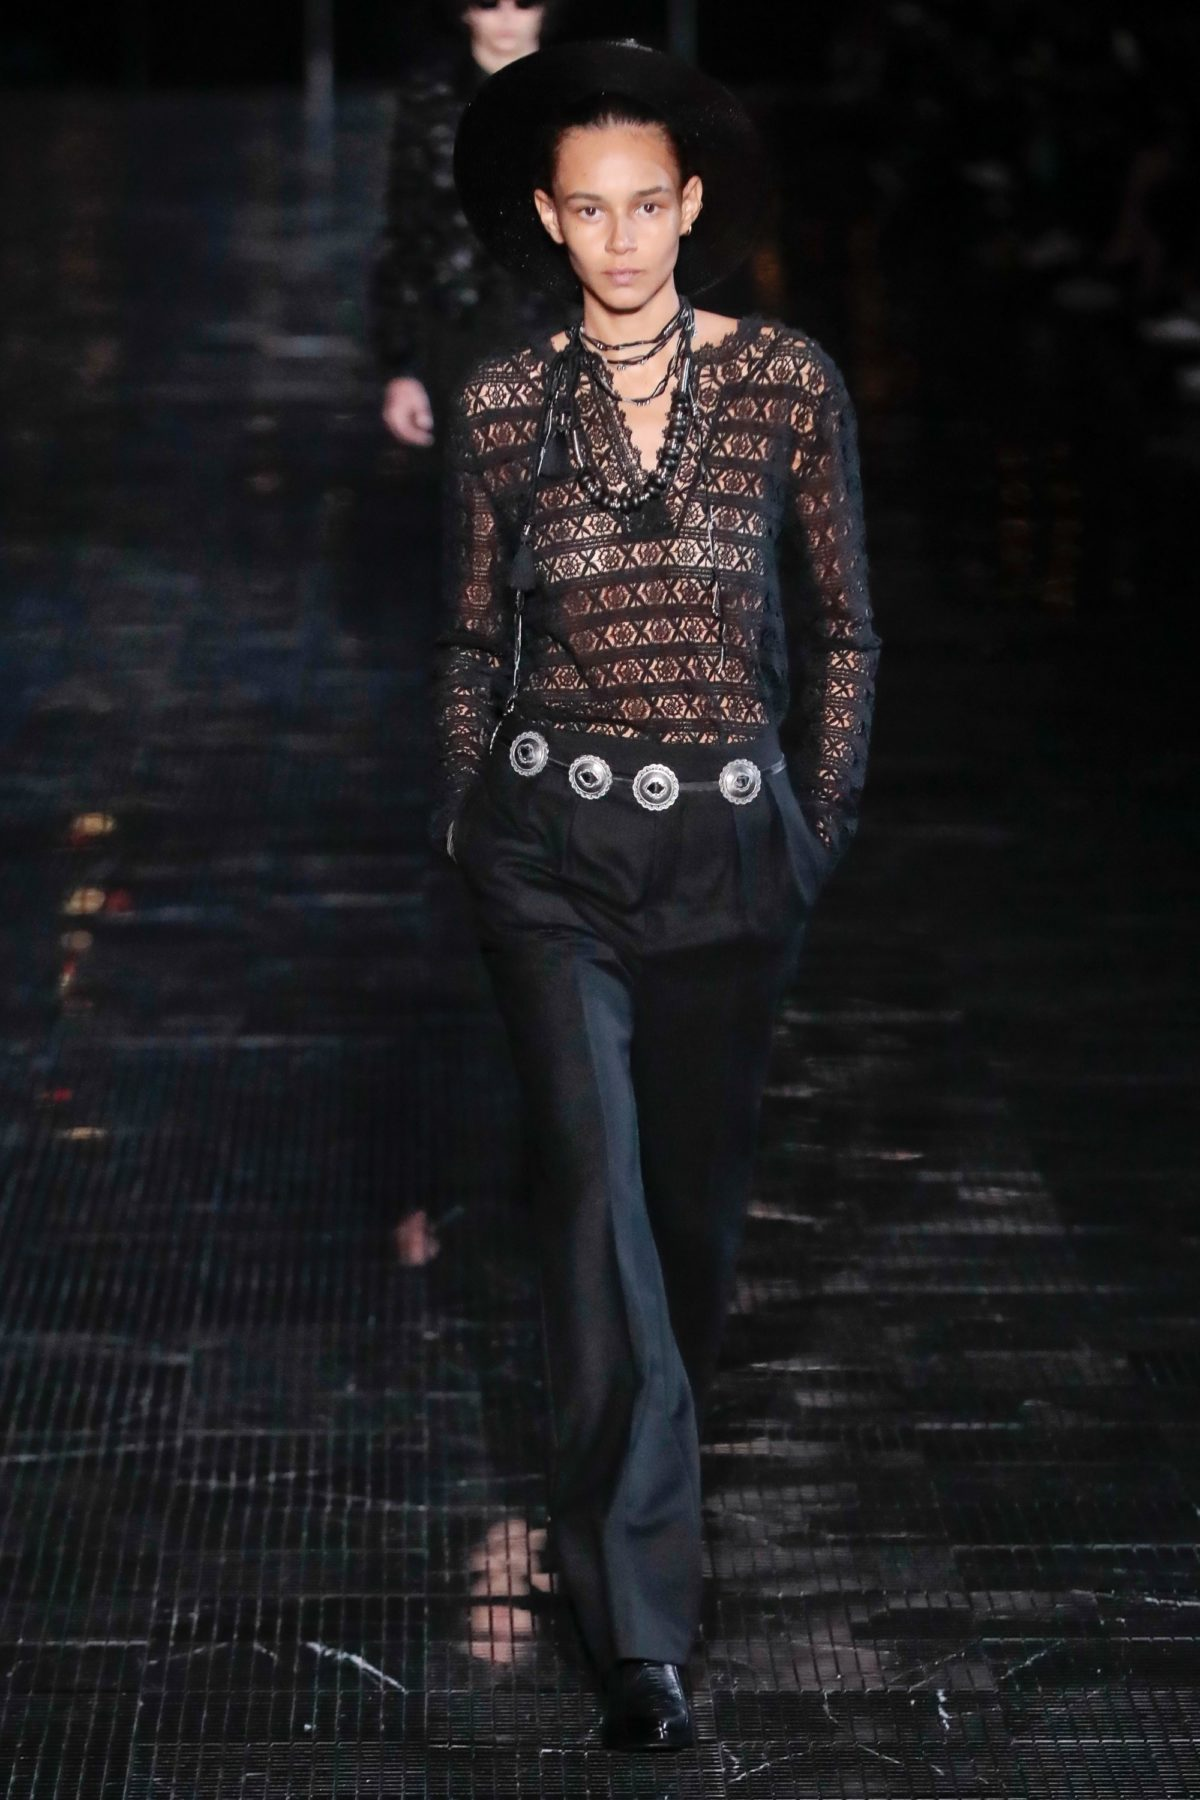 ed9a953d0ab Saint Laurent's design director Anthony Vaccarello presented the Spring 2019  men's collection (with a few women's looks) in New Jersey's Liberty State  Park.